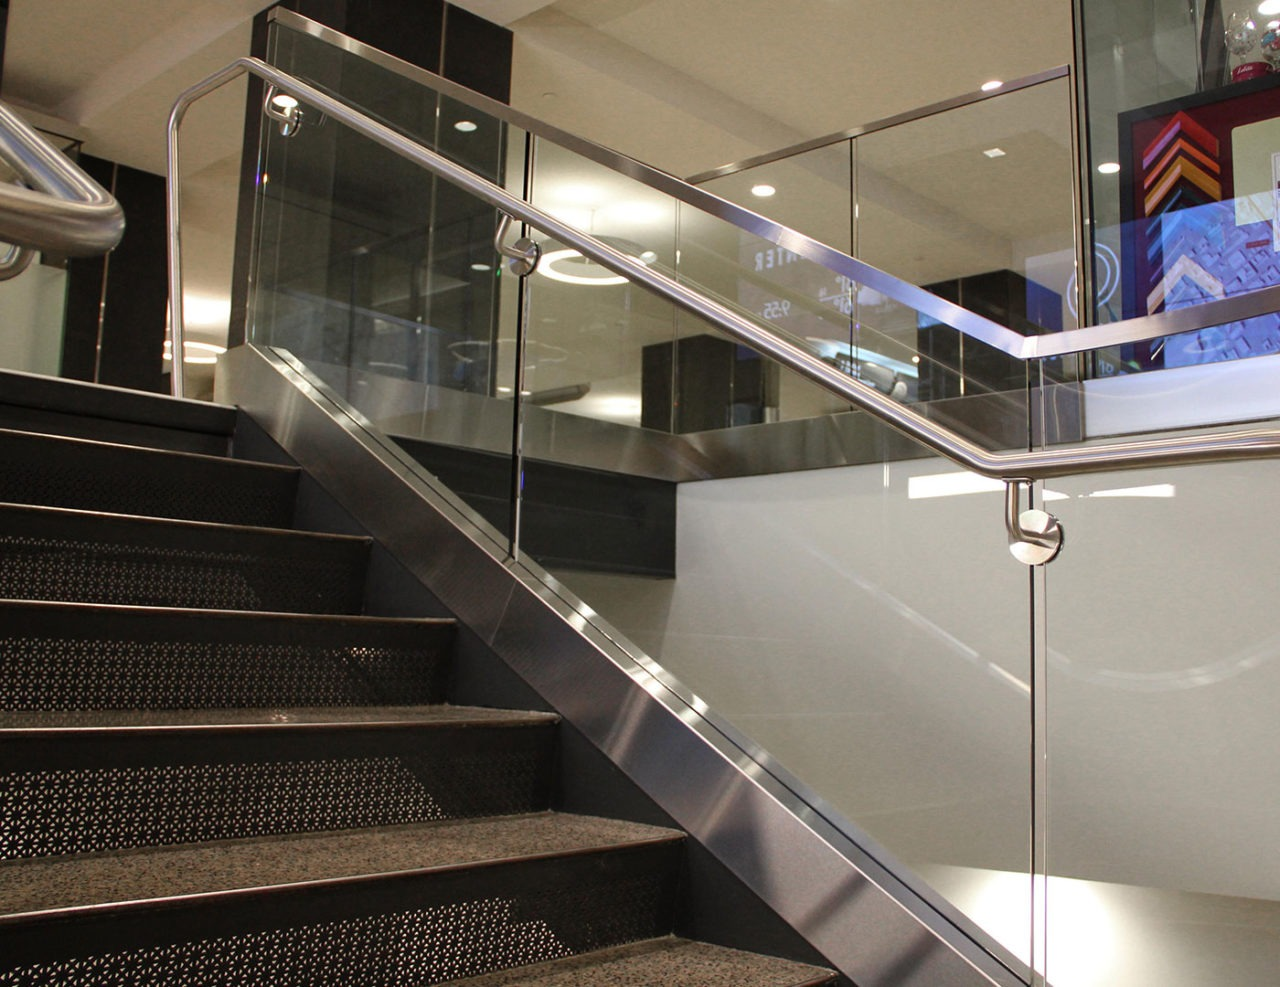 At the top of the stairs, the metal handrail seamlessly transitions from glass infill to floor return.